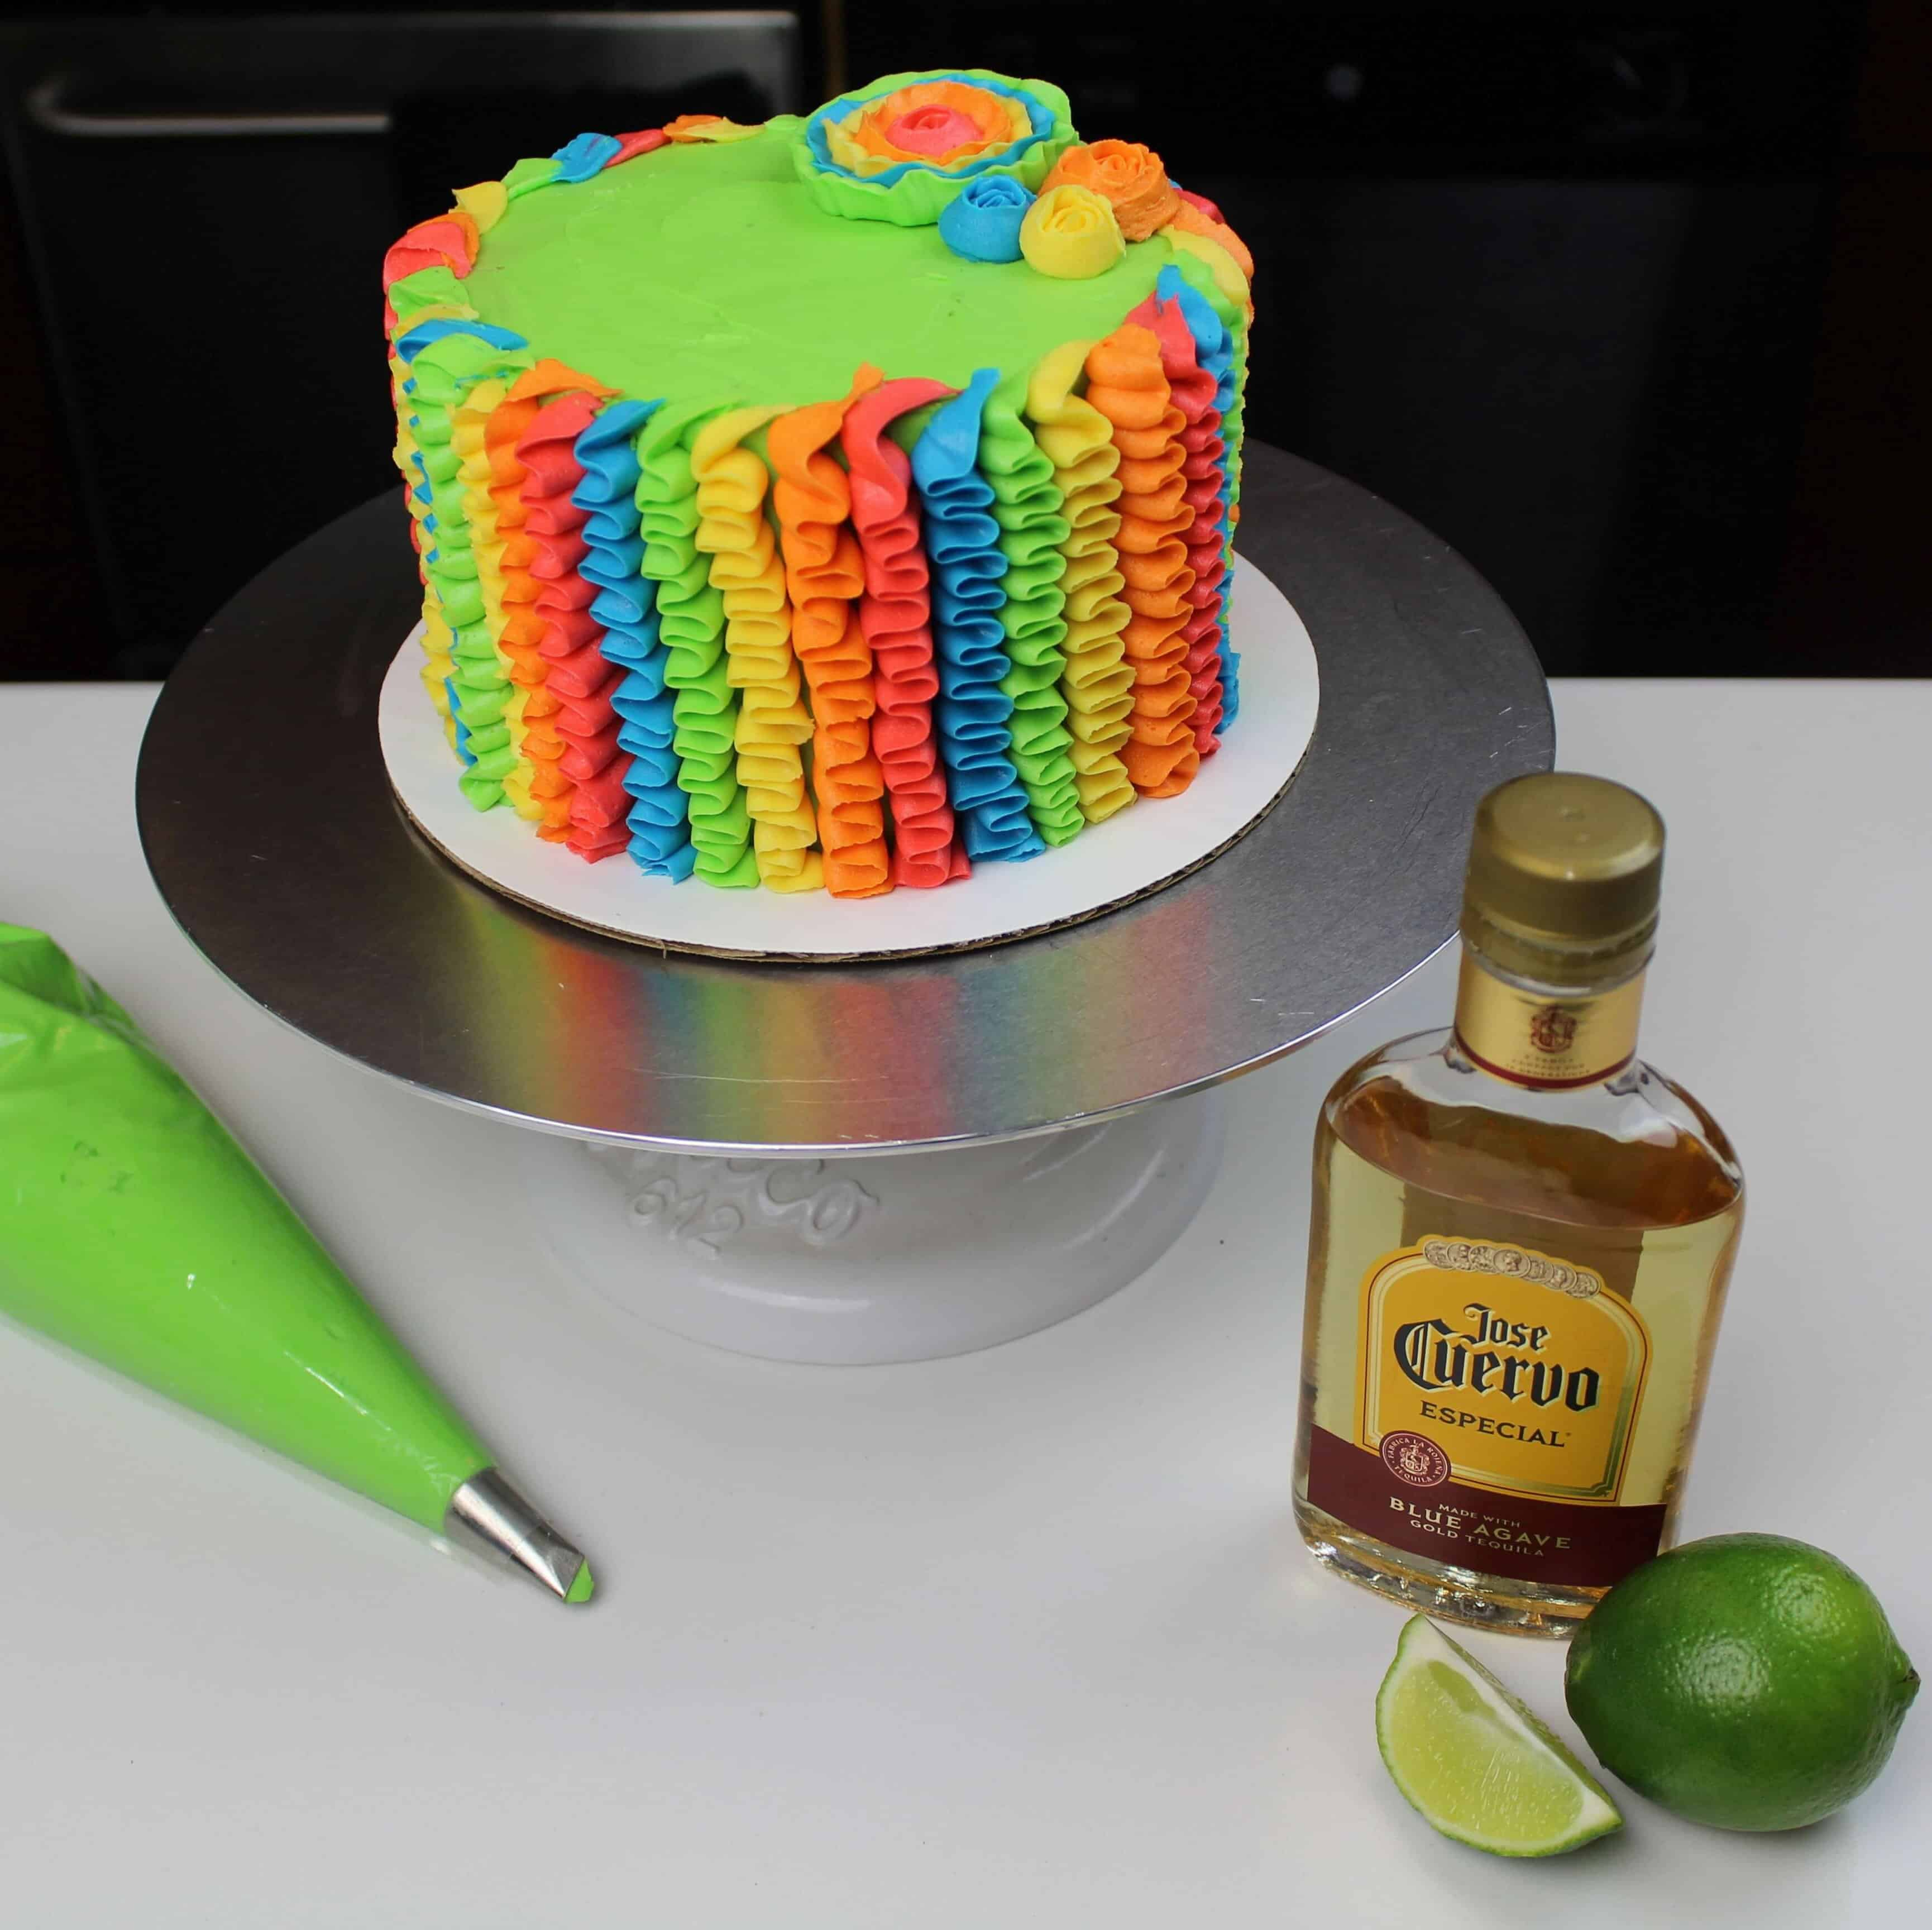 uncut tequila lime cake decorated with buttercream ruffles